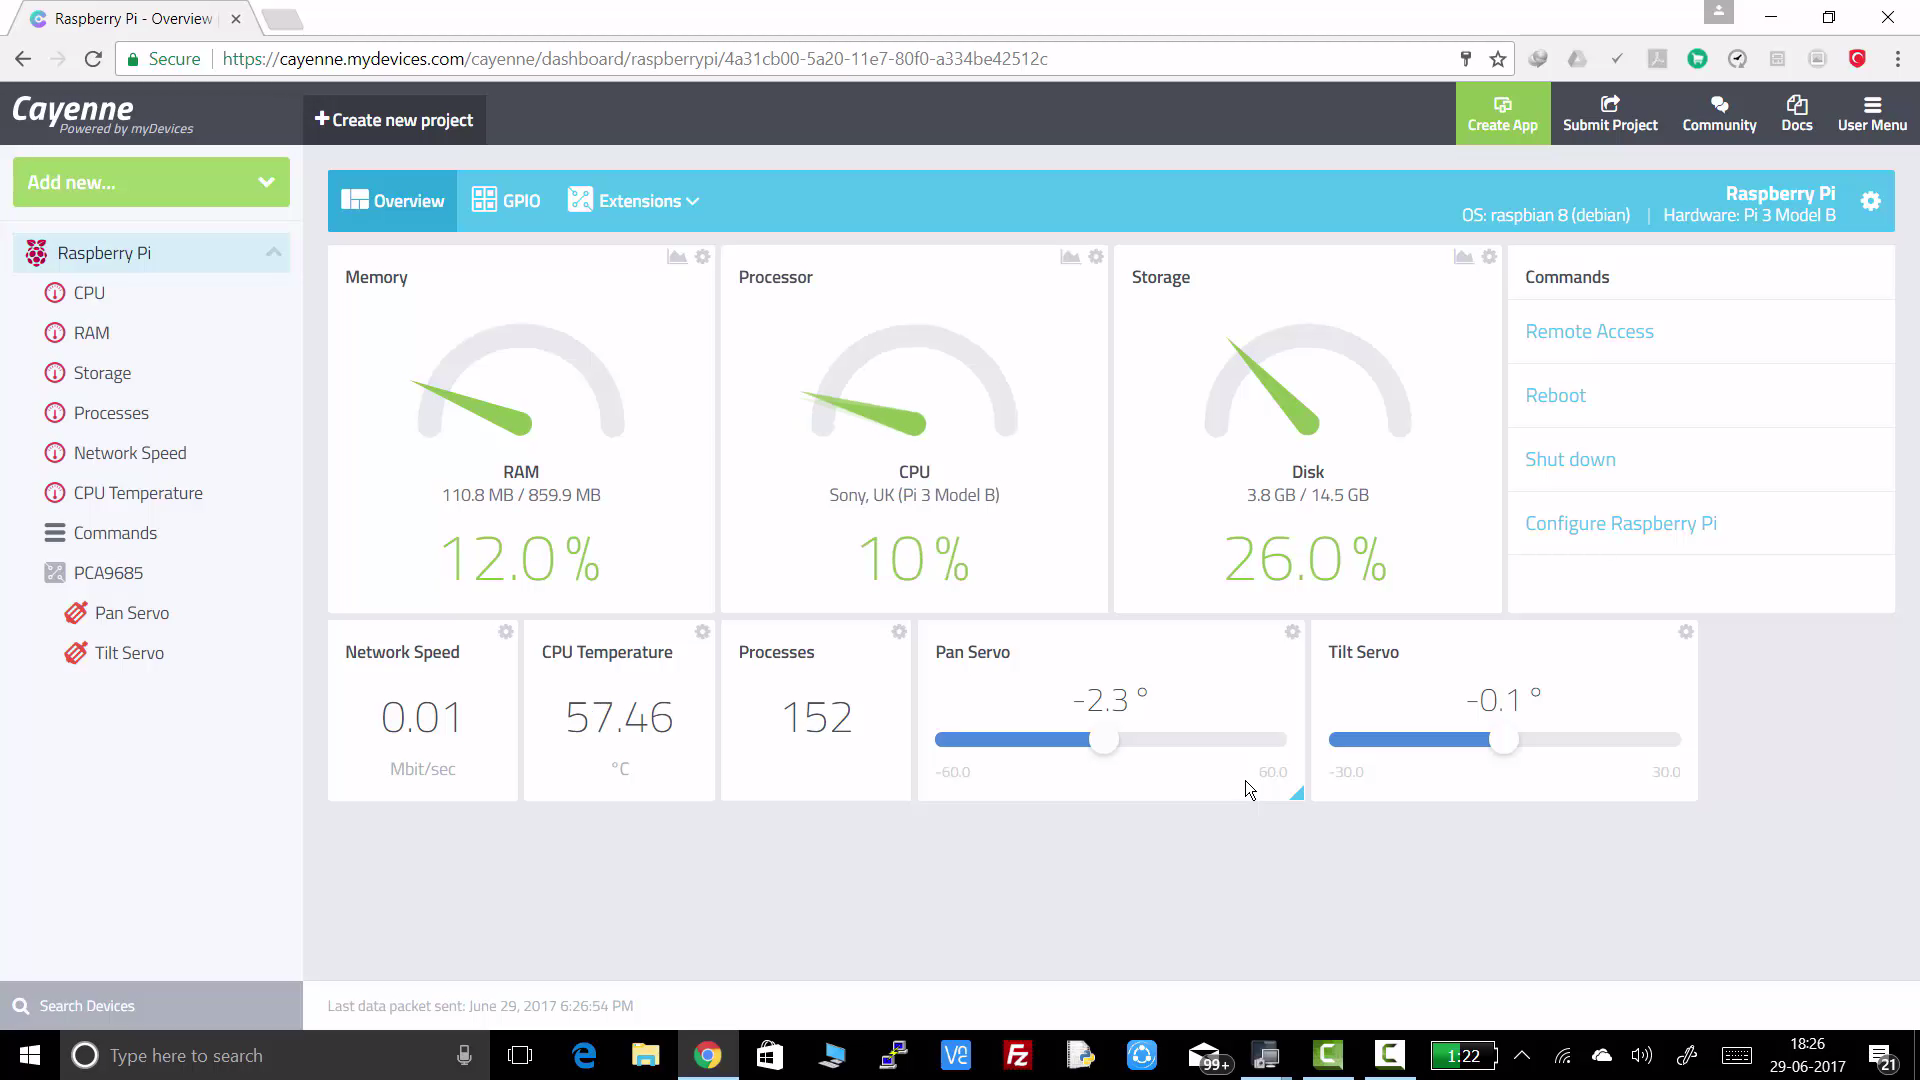 Picture of Modify Cayenne Dashboard